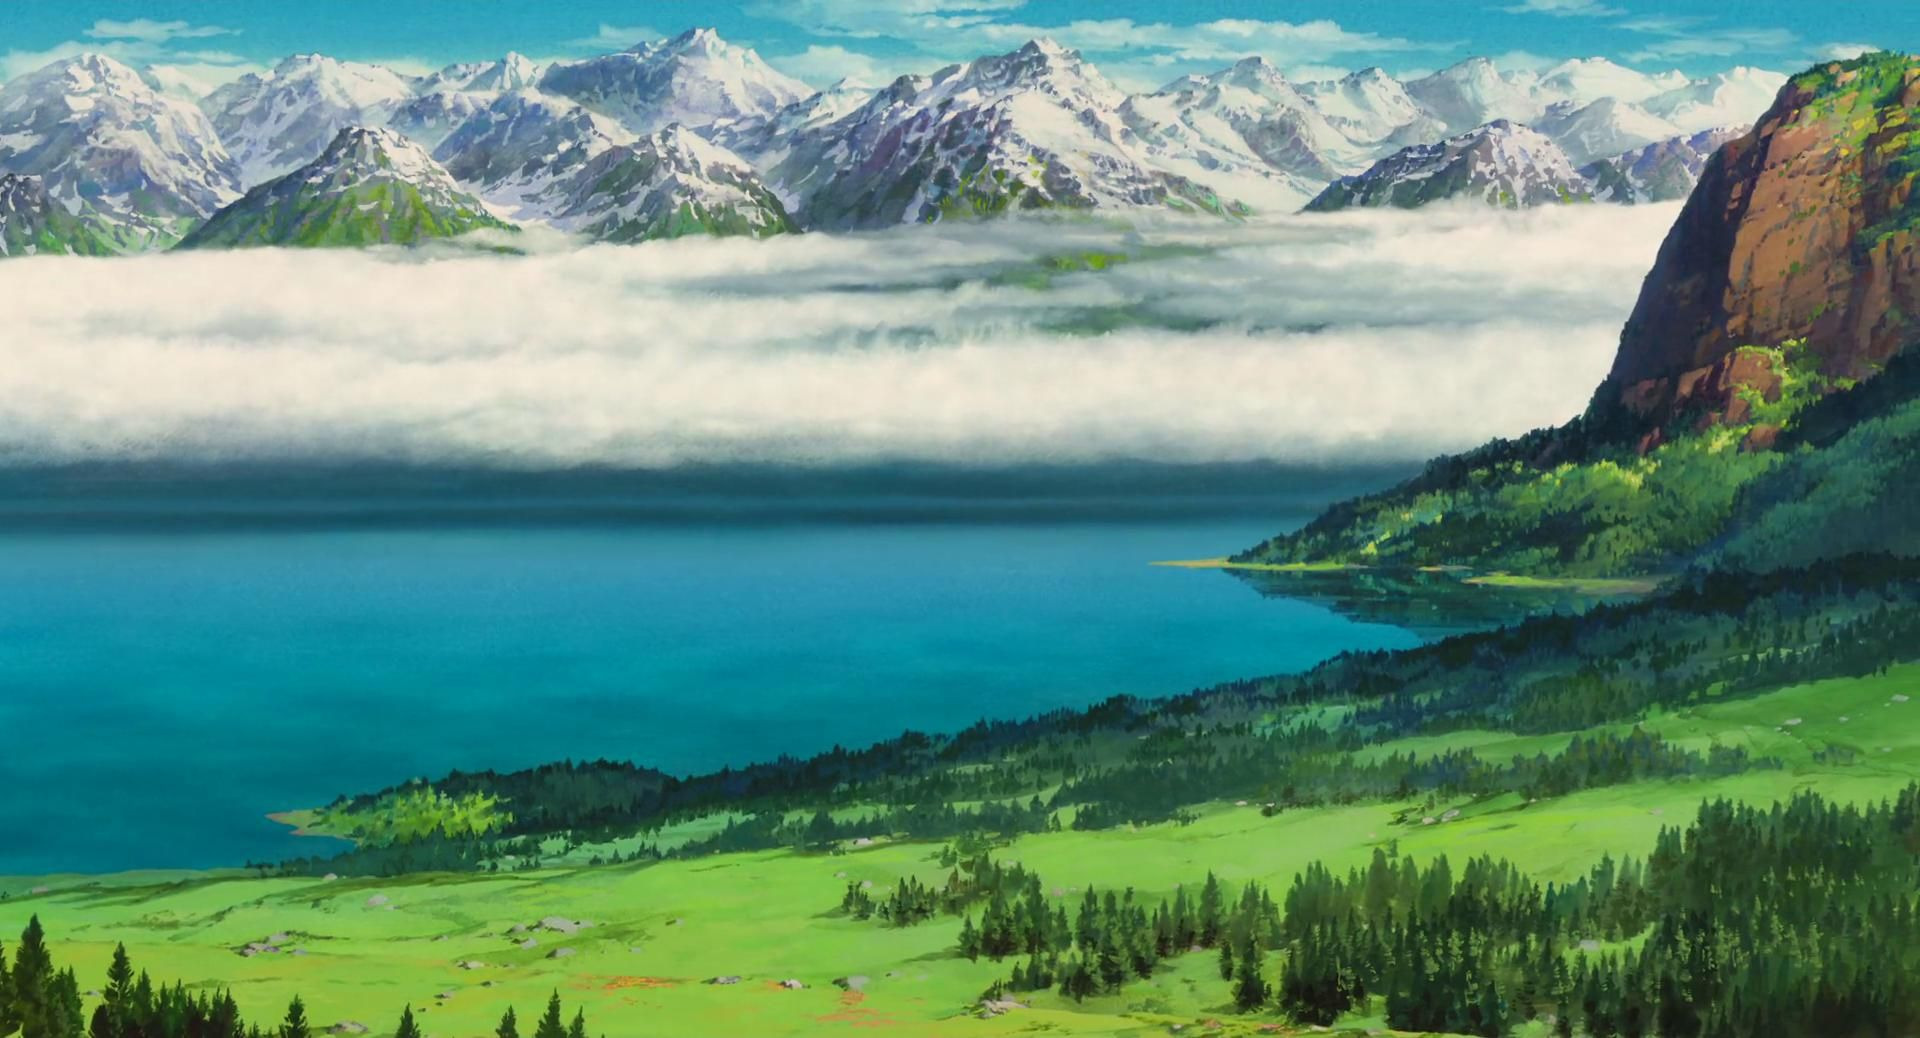 Anime Landscapes wallpaper city and land scapes